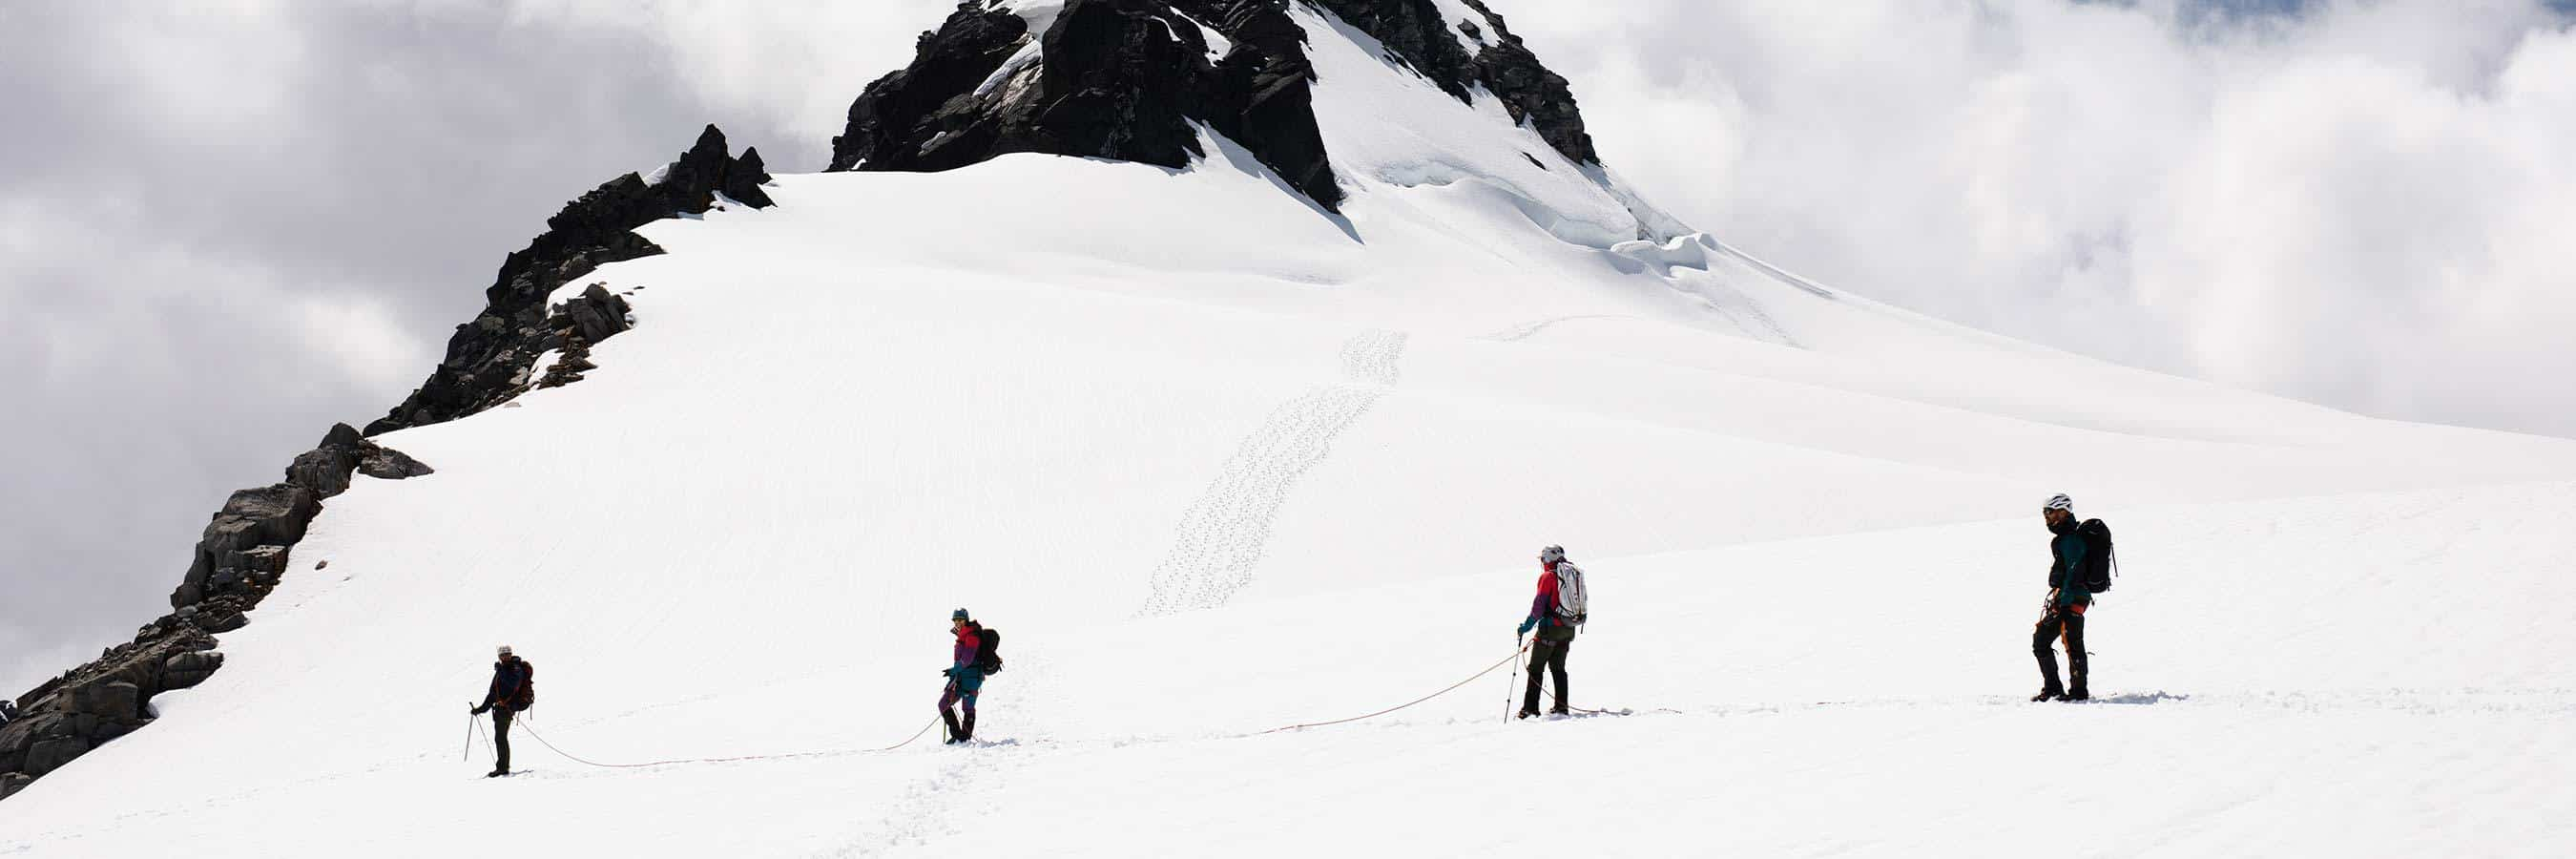 Mountaineering With Mountain Hardwear: Training New Adventurers At Canada's Most Historic Alpine Camp